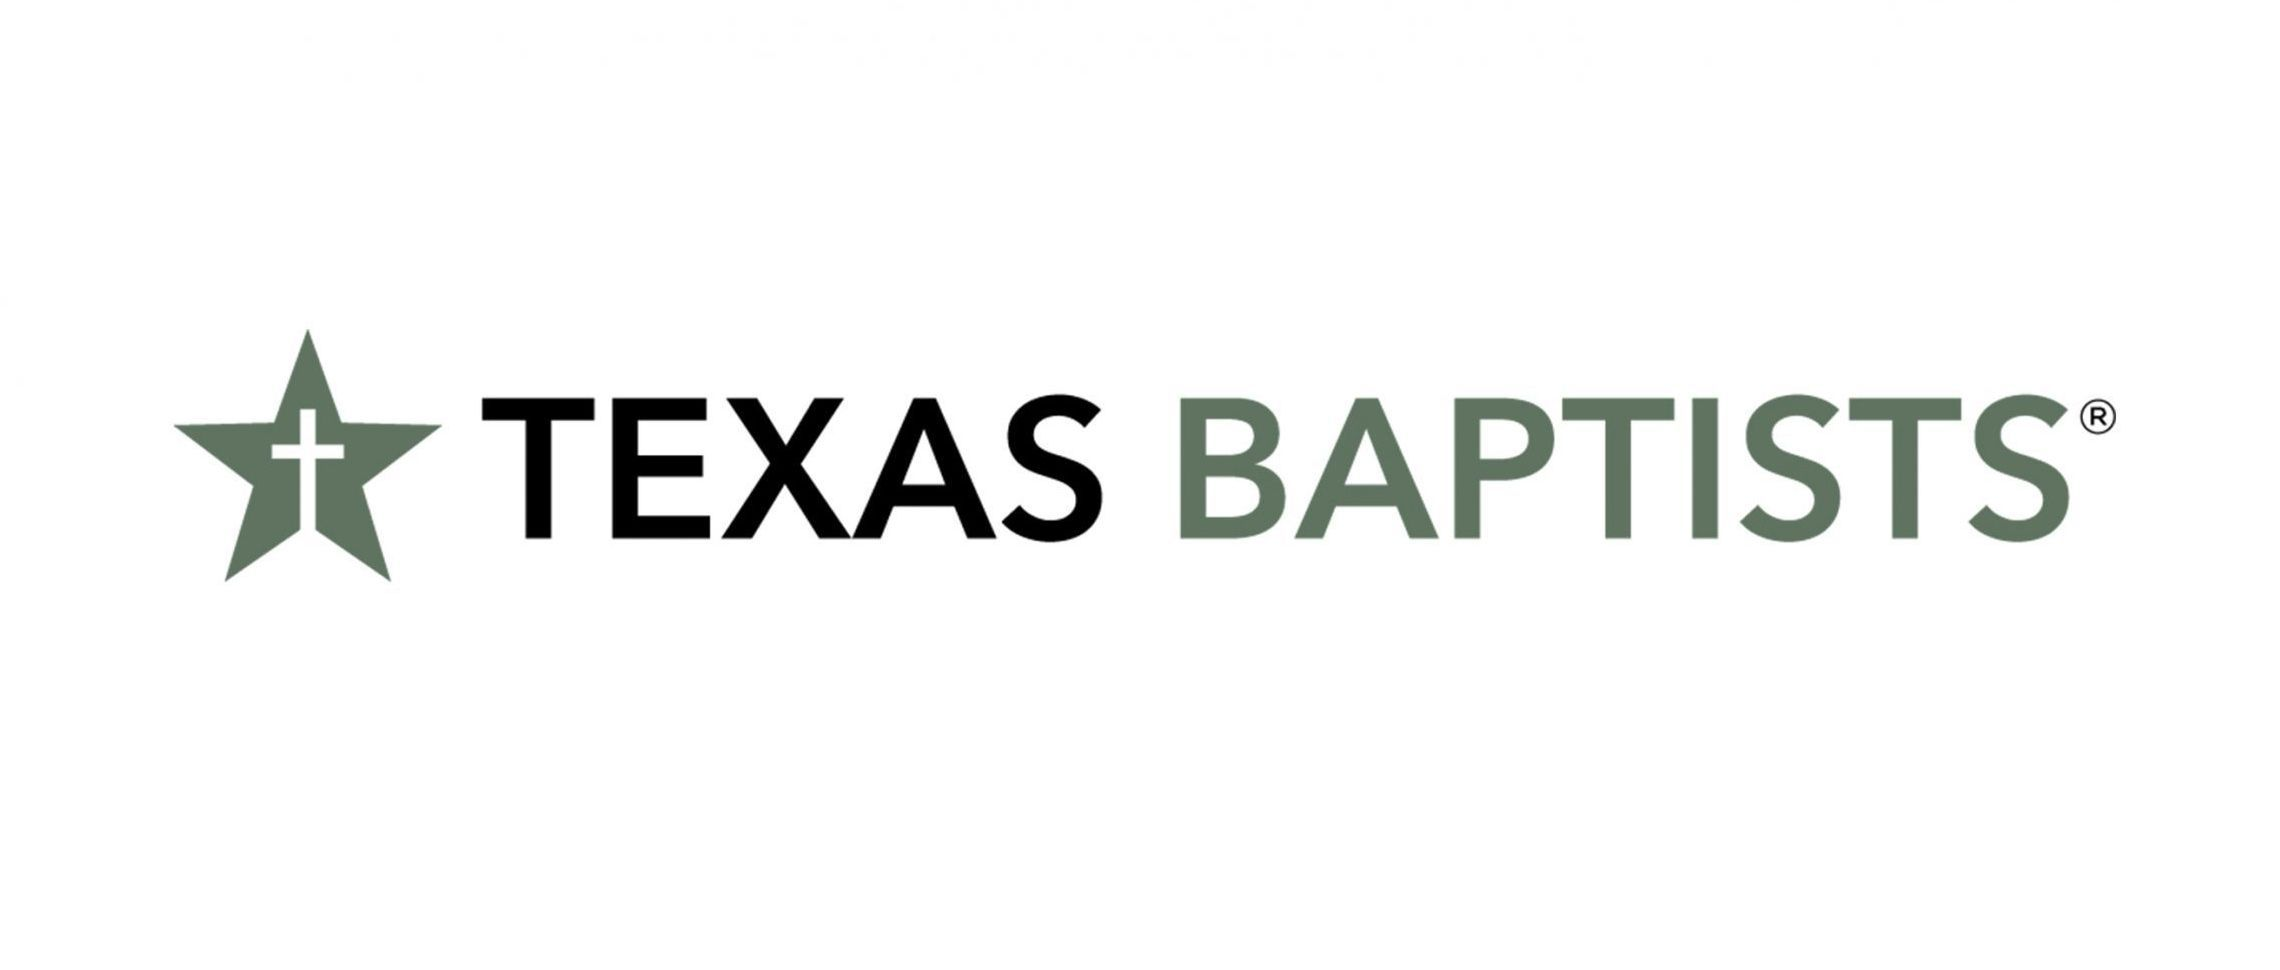 Texas Baptists News